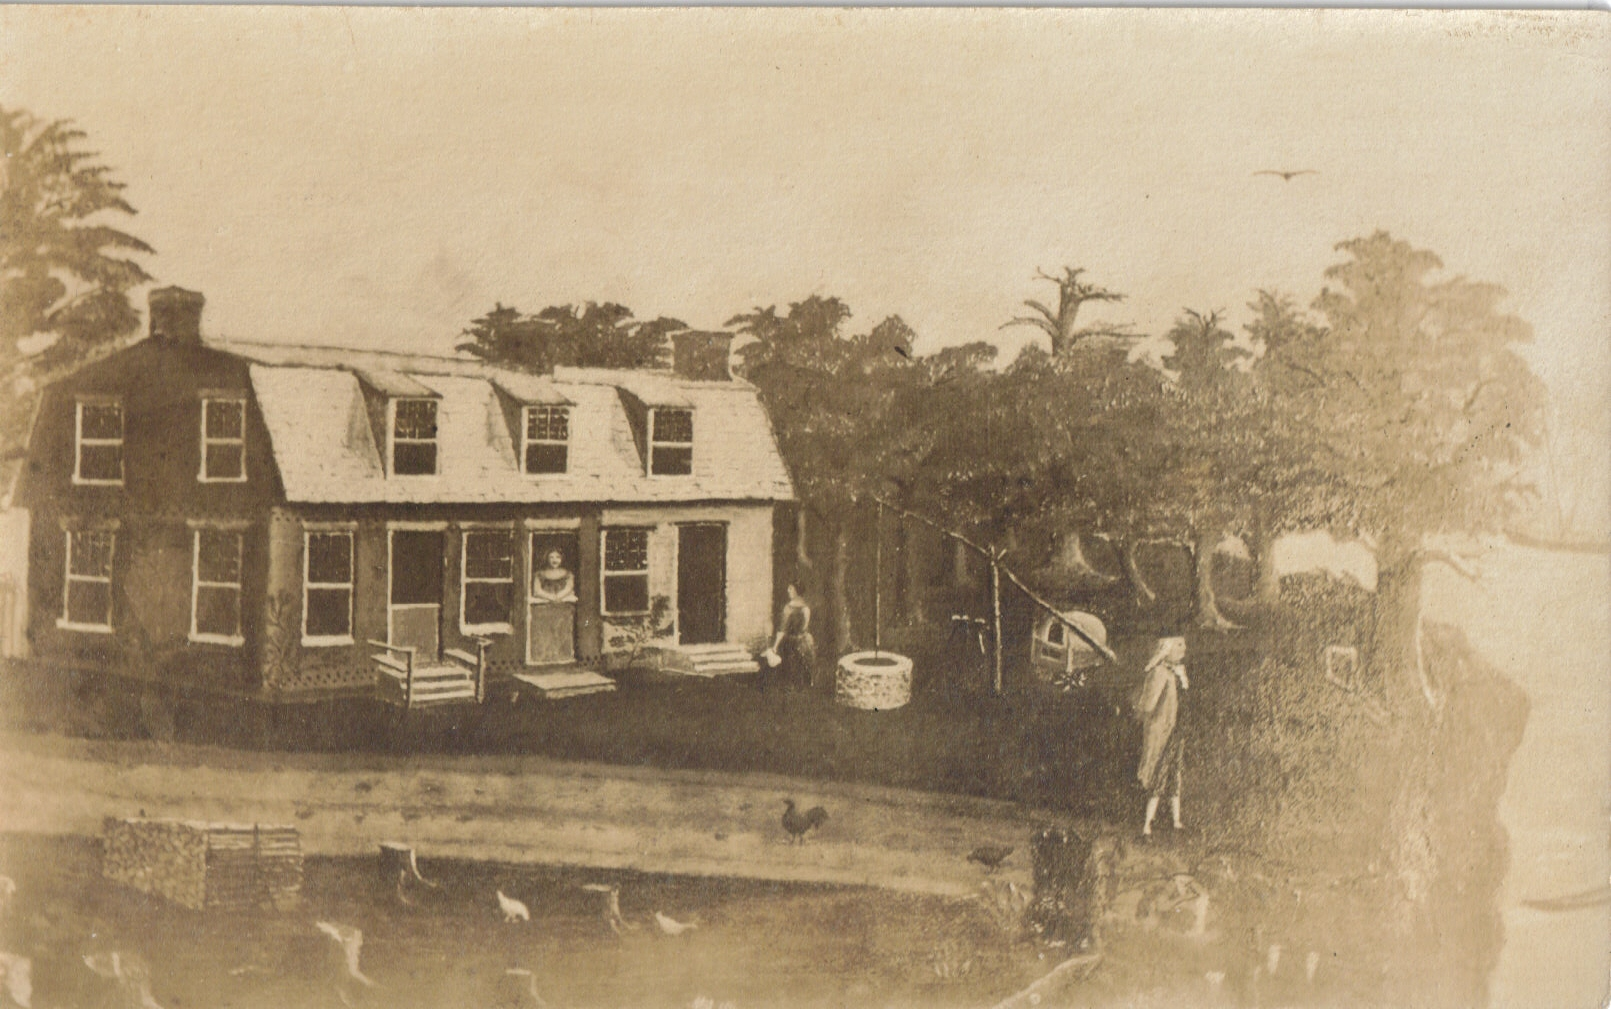 Postcard of John Fenwick's Home along Salem Creek